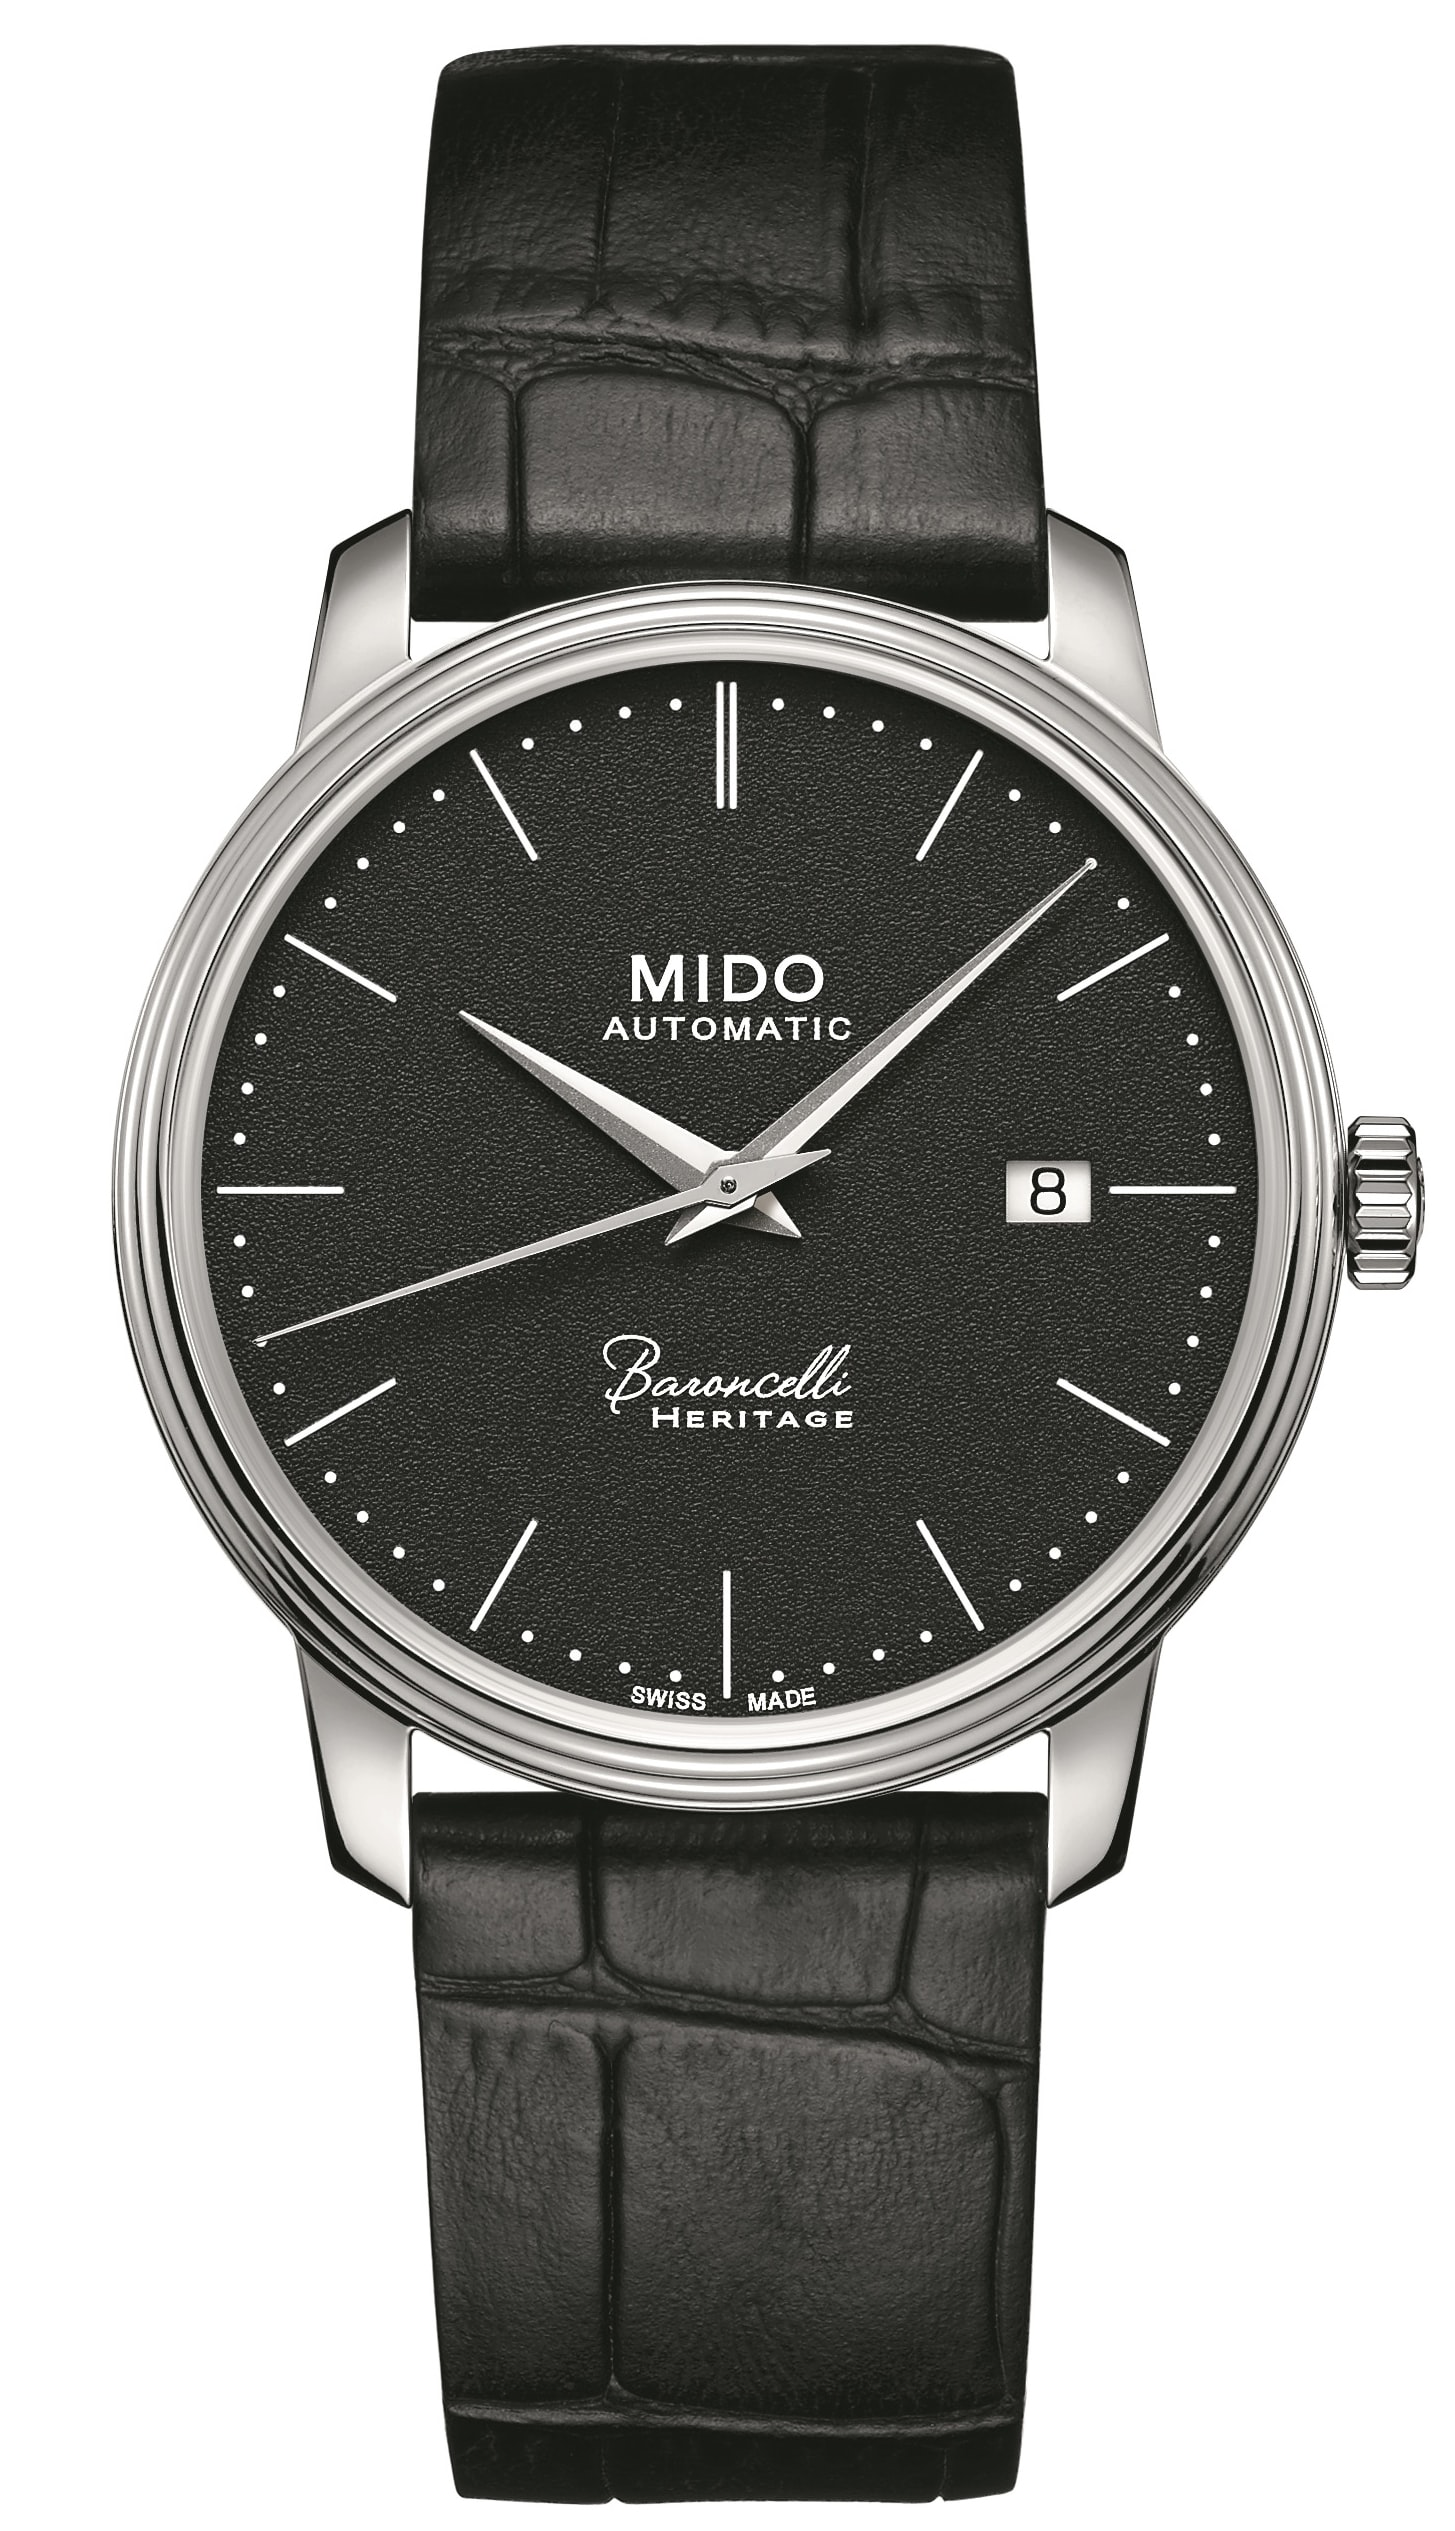 The Value Proposition: The Mido Baroncelli Heritage, A Great Looking Simple Watch At A Great Price The Value Proposition: The Mido Baroncelli Heritage, A Great Looking Simple Watch At A Great Price crop 2